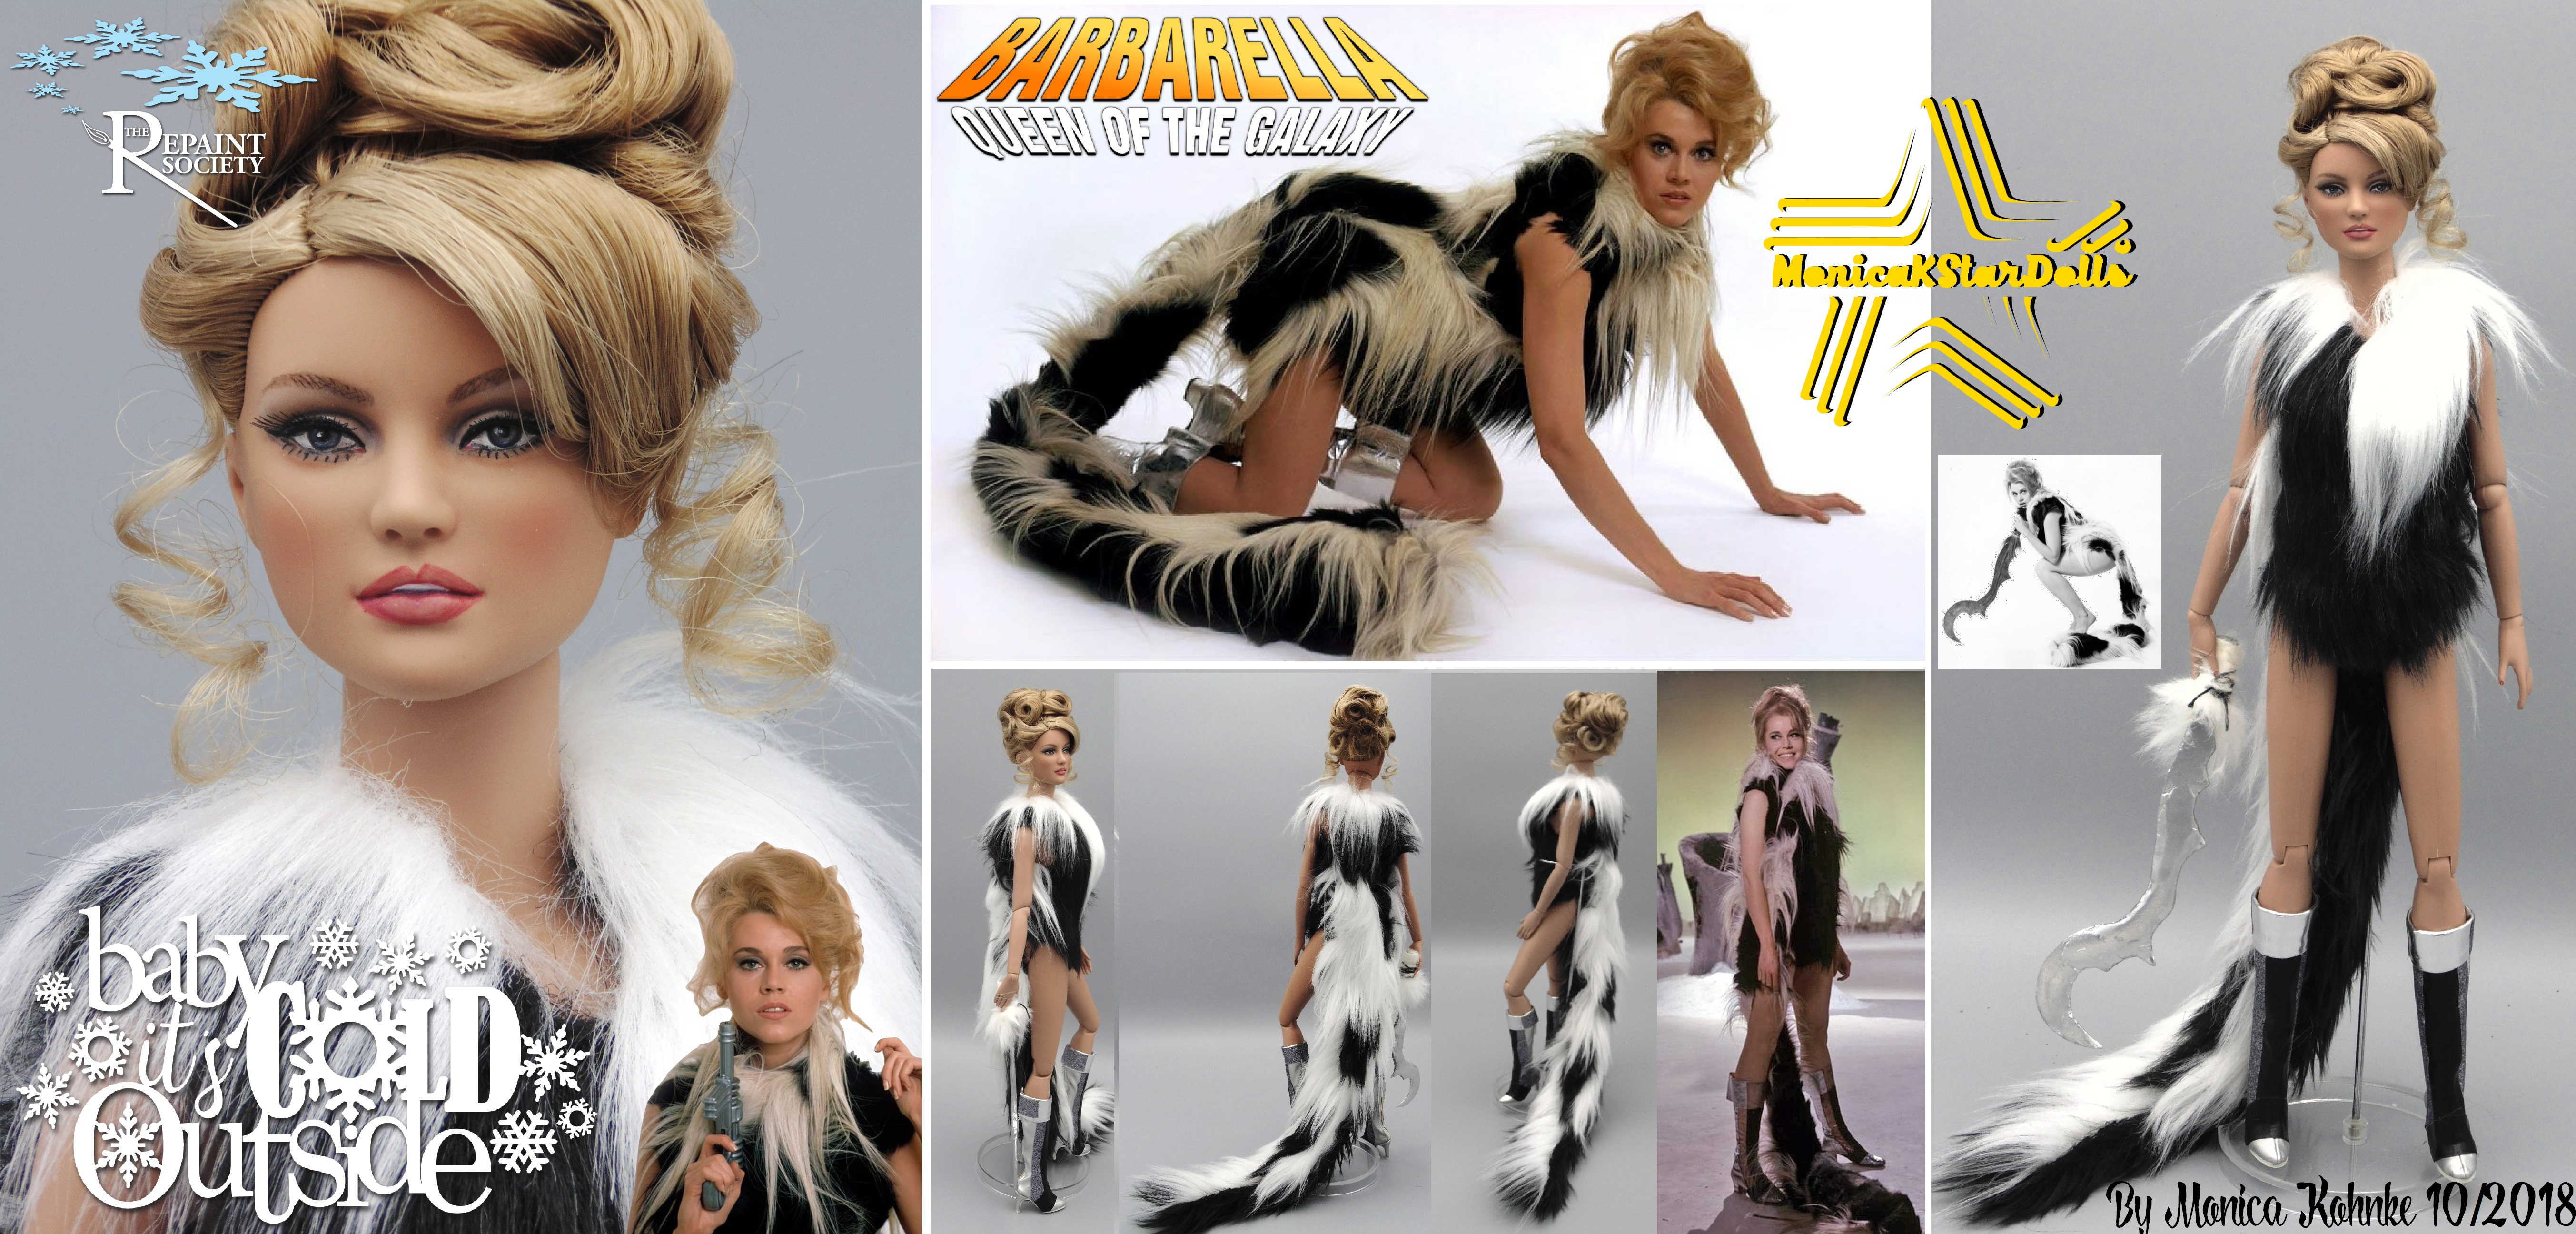 Barbarella Queen of the Galaxy